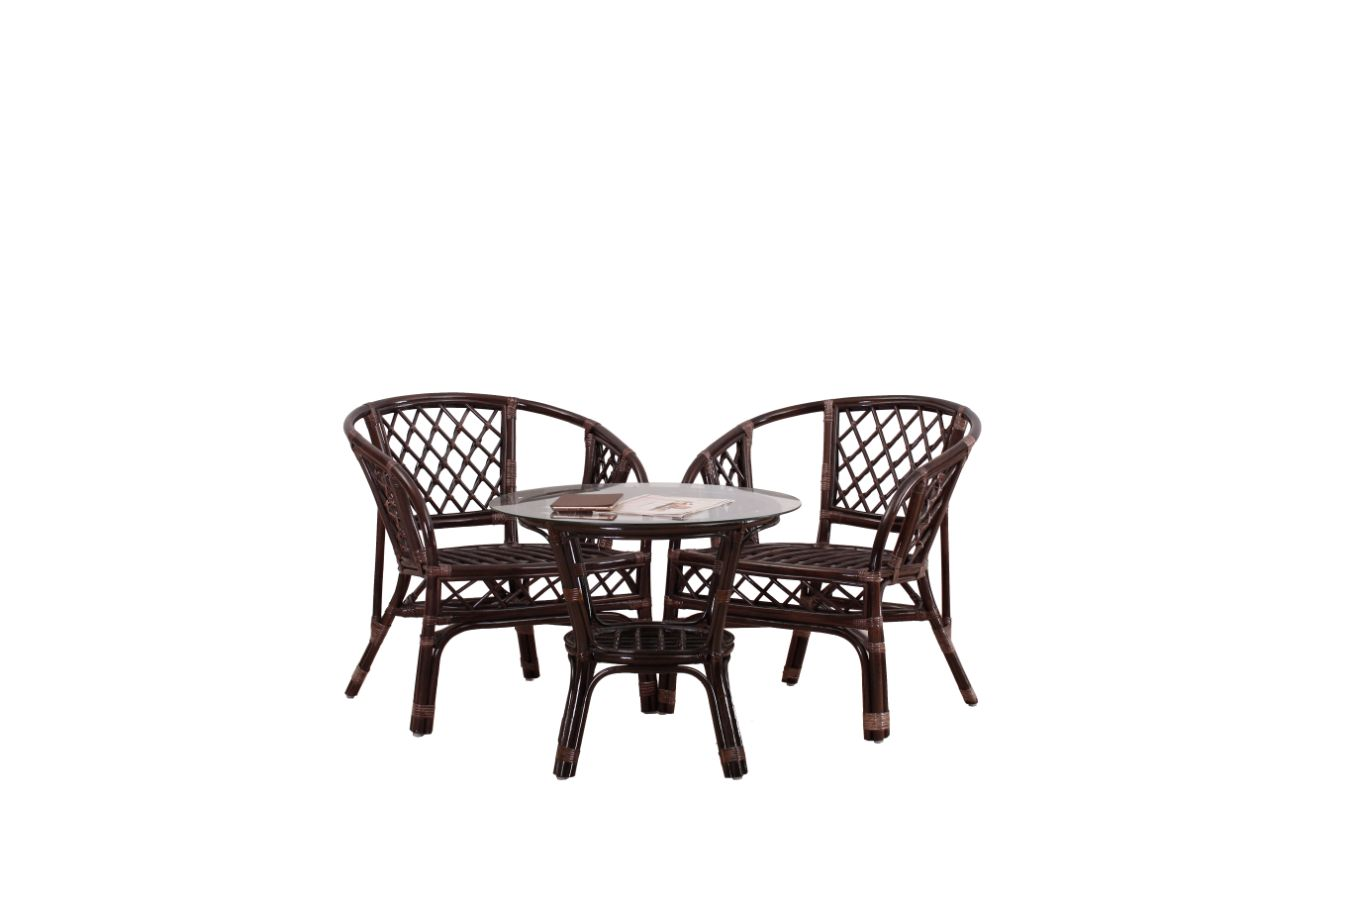 Rattan Furniture 42